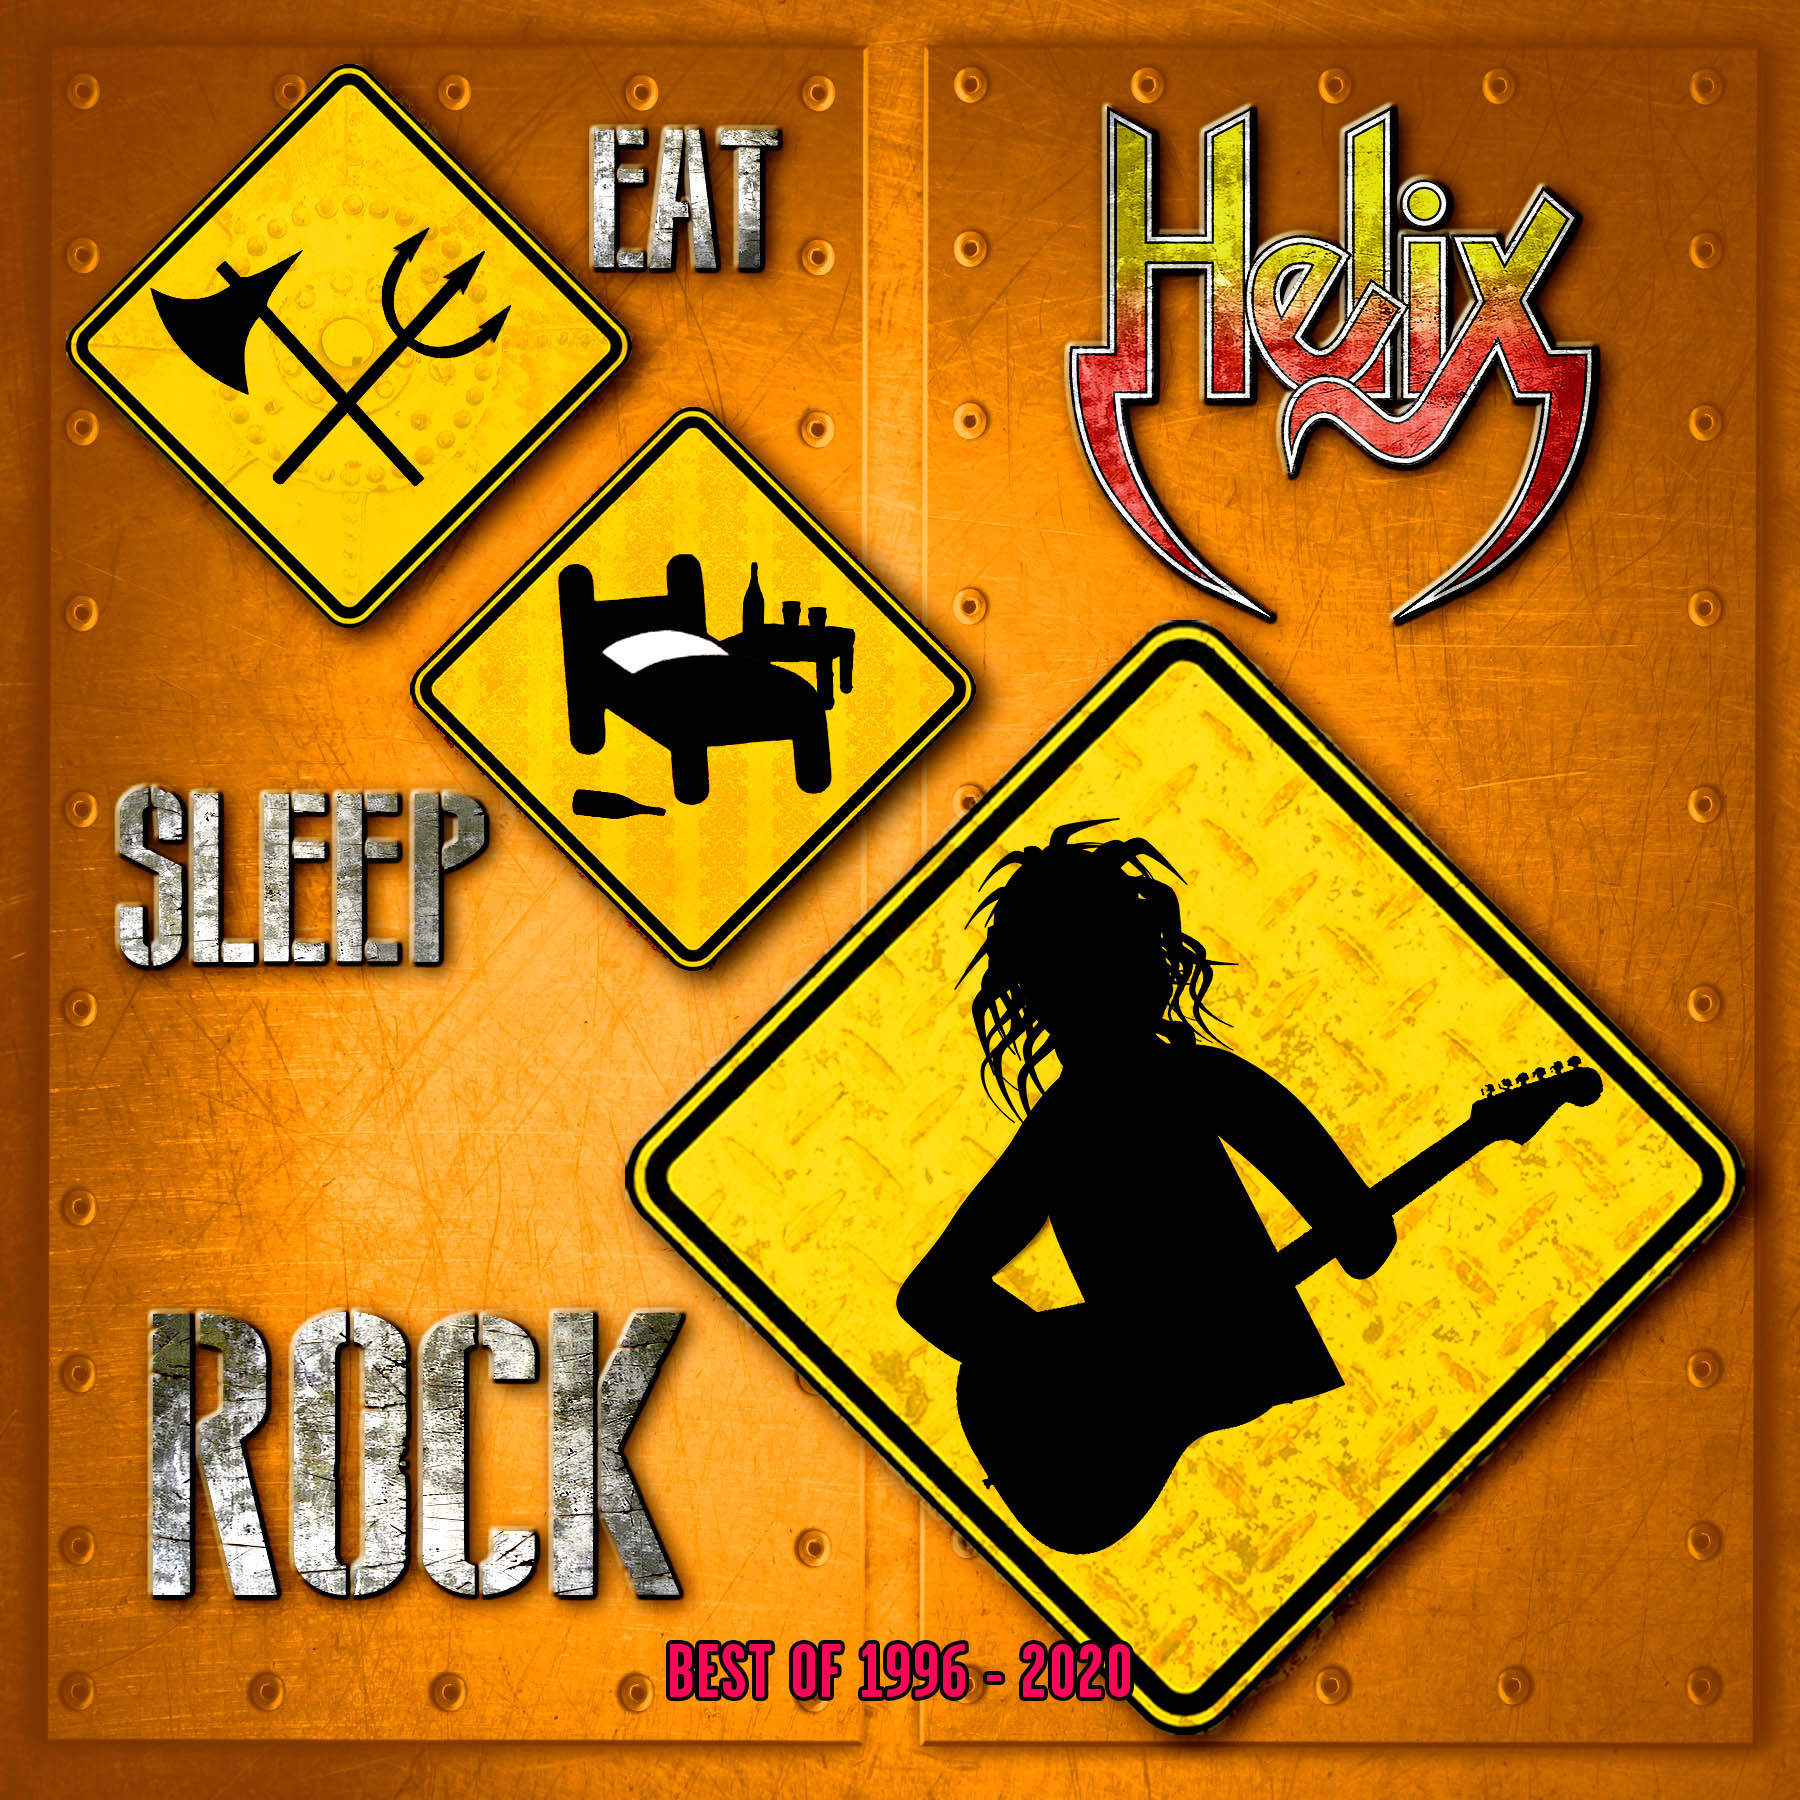 HELIX Premiere Title Track Video From Forthcoming Album 'Eat Sleep Rock'  Release – Metal-Rules.com